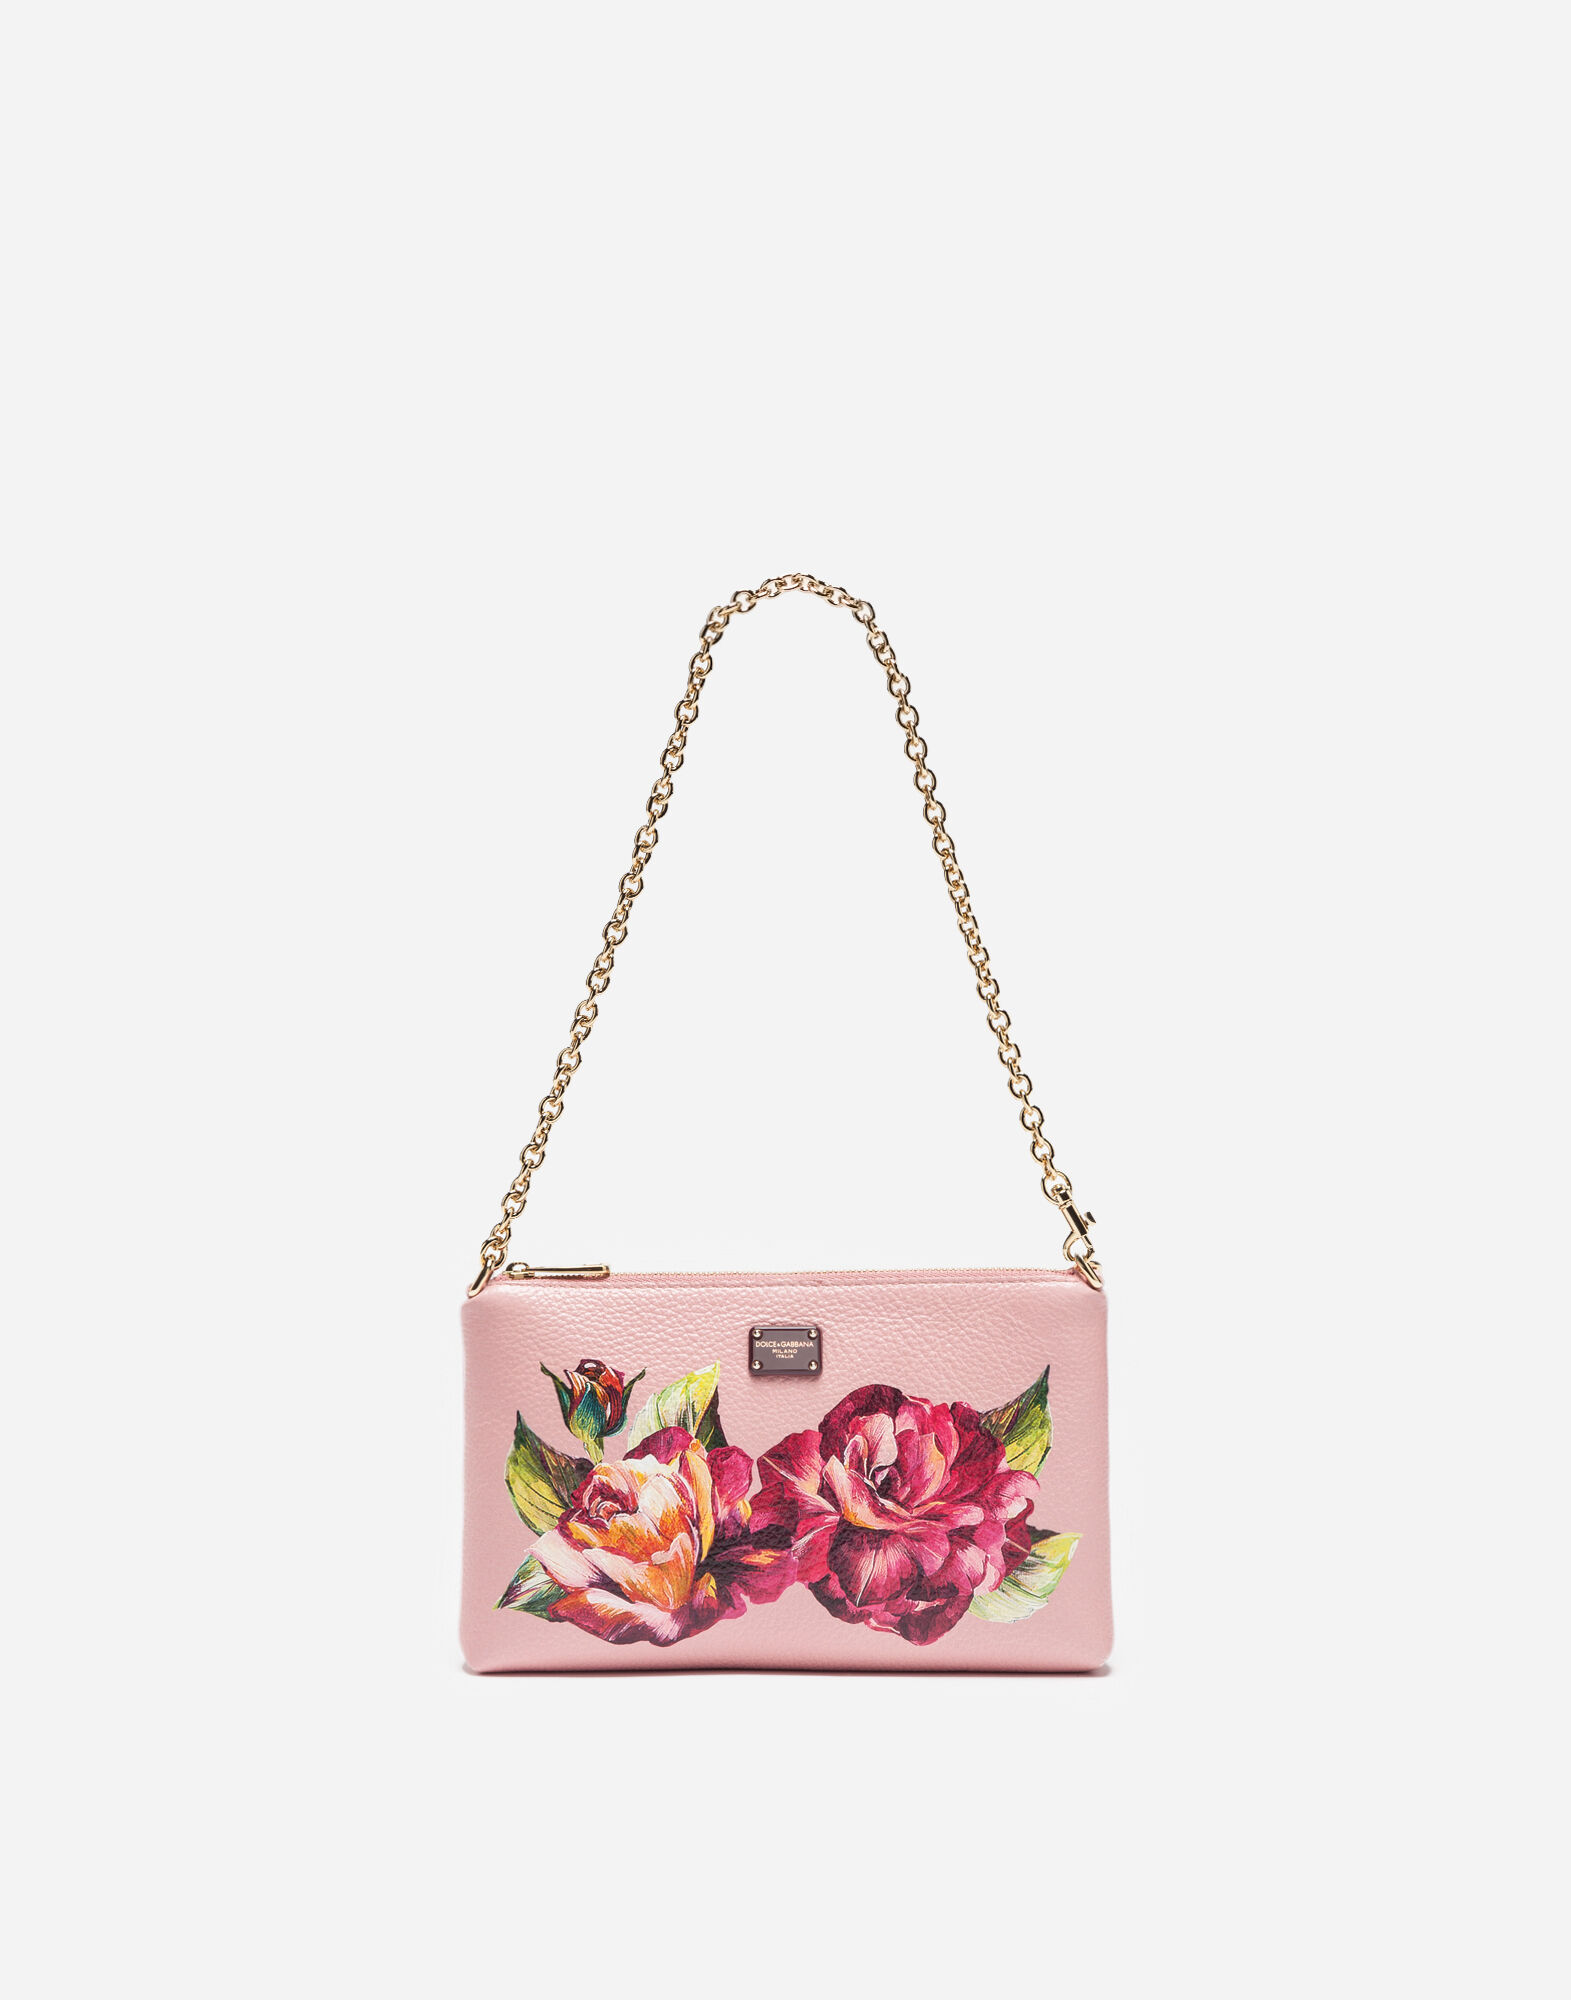 MINI BAG IN PRINTED LEATHER